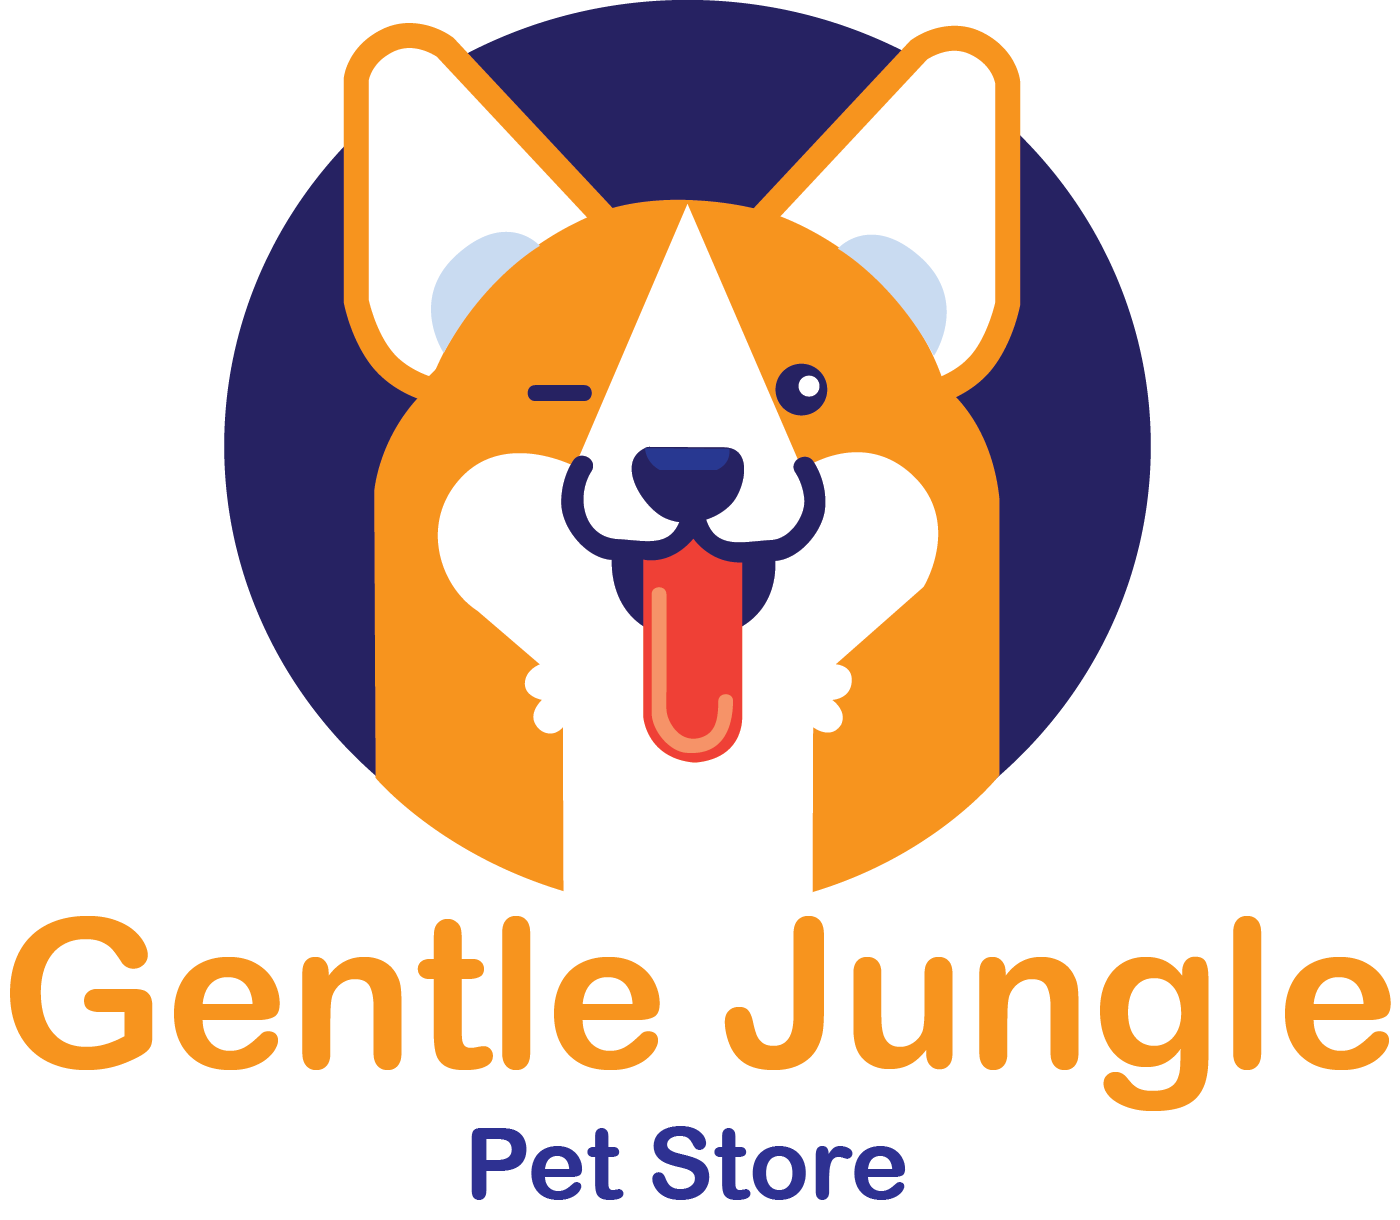 Gentle Jungle logo